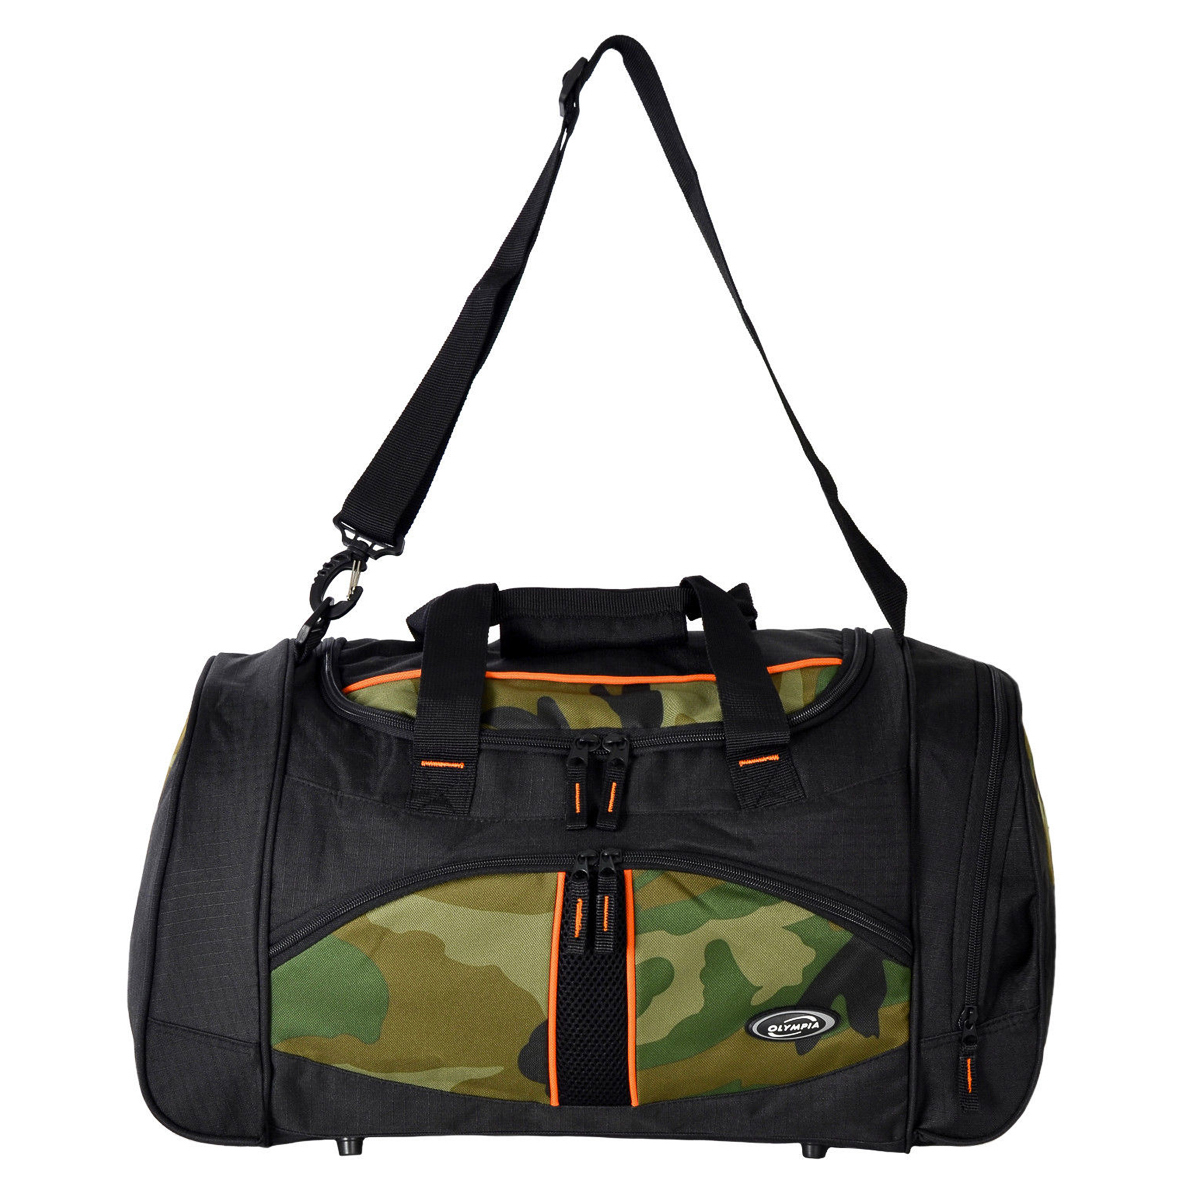 Olympia Heavy Duty Nomad Camouflage 25 Sports Duffle Duffel Tote Bag Travel Gym by